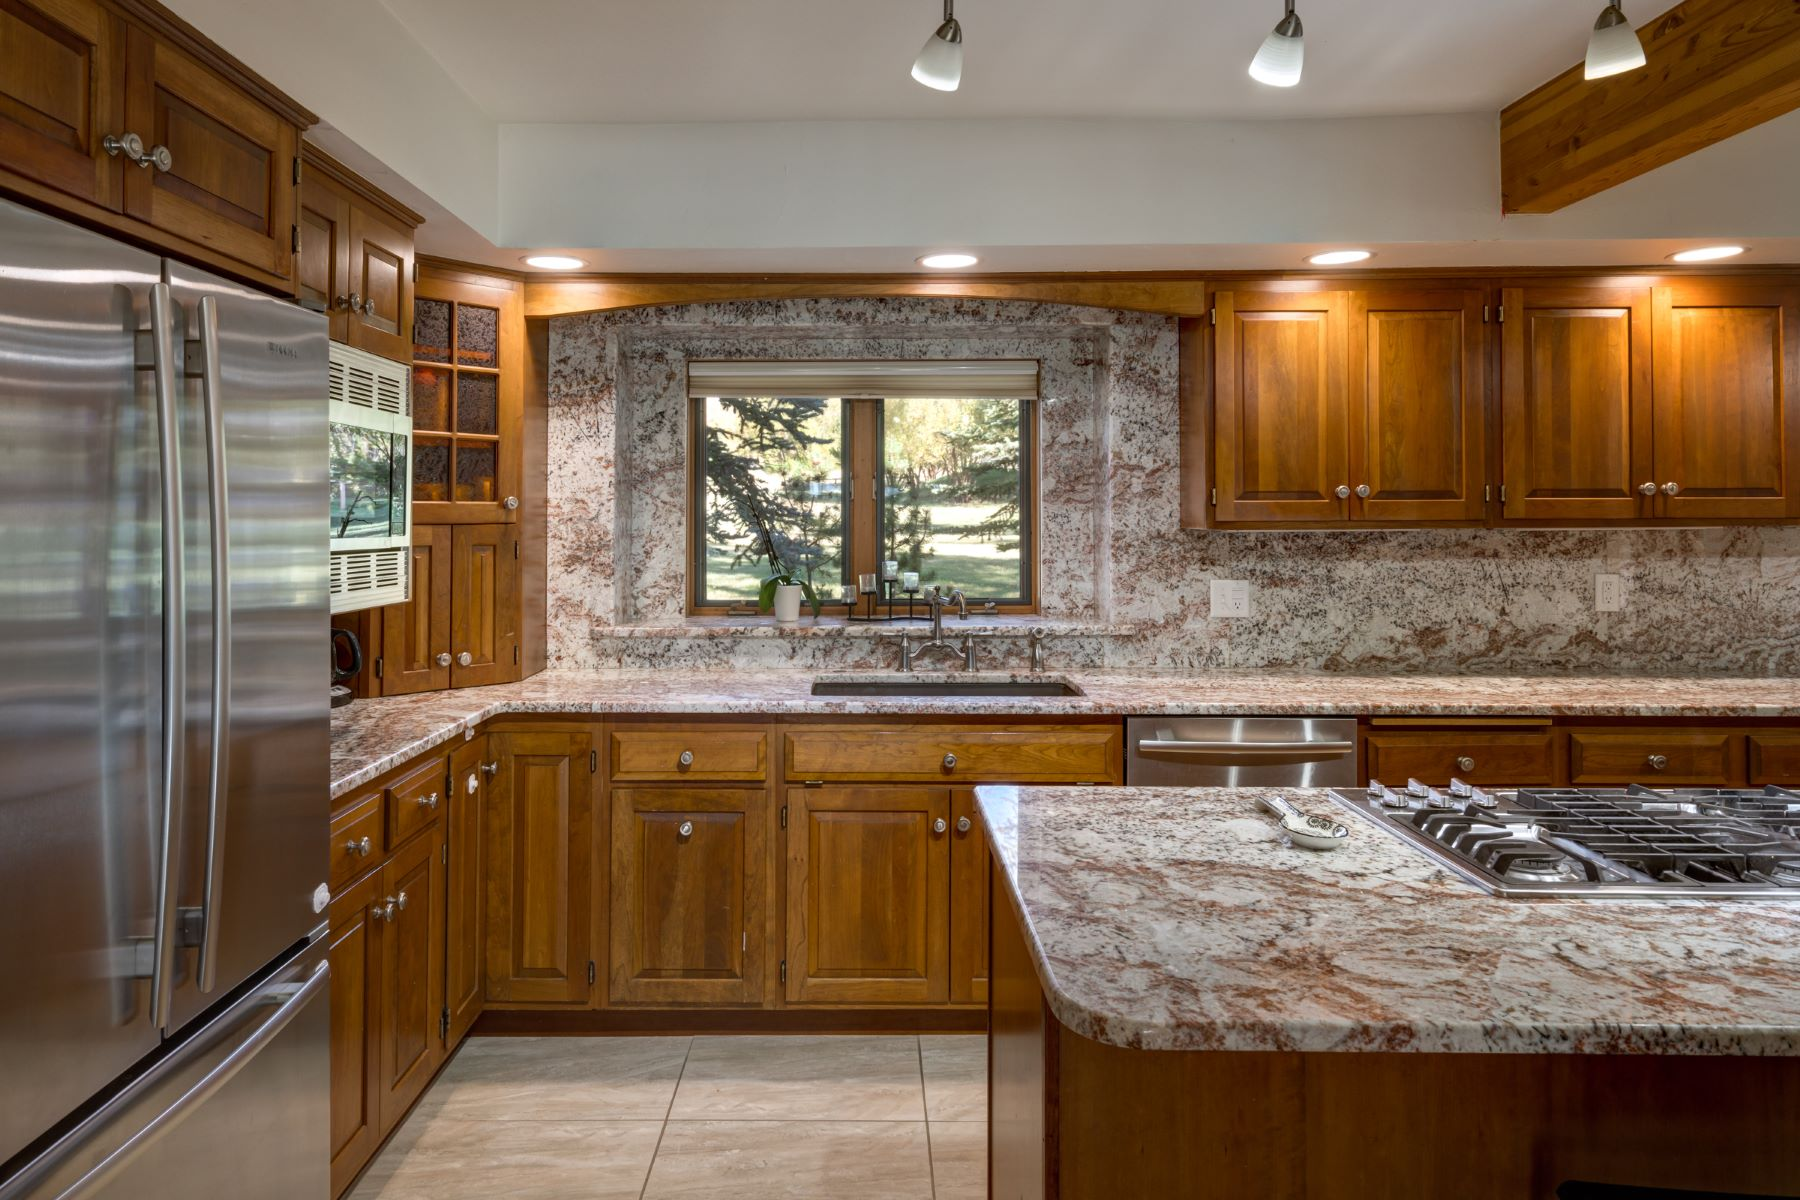 Additional photo for property listing at Circle Bar 8 Ranch 32805 CR 20 Steamboat Springs, Colorado 80487 United States